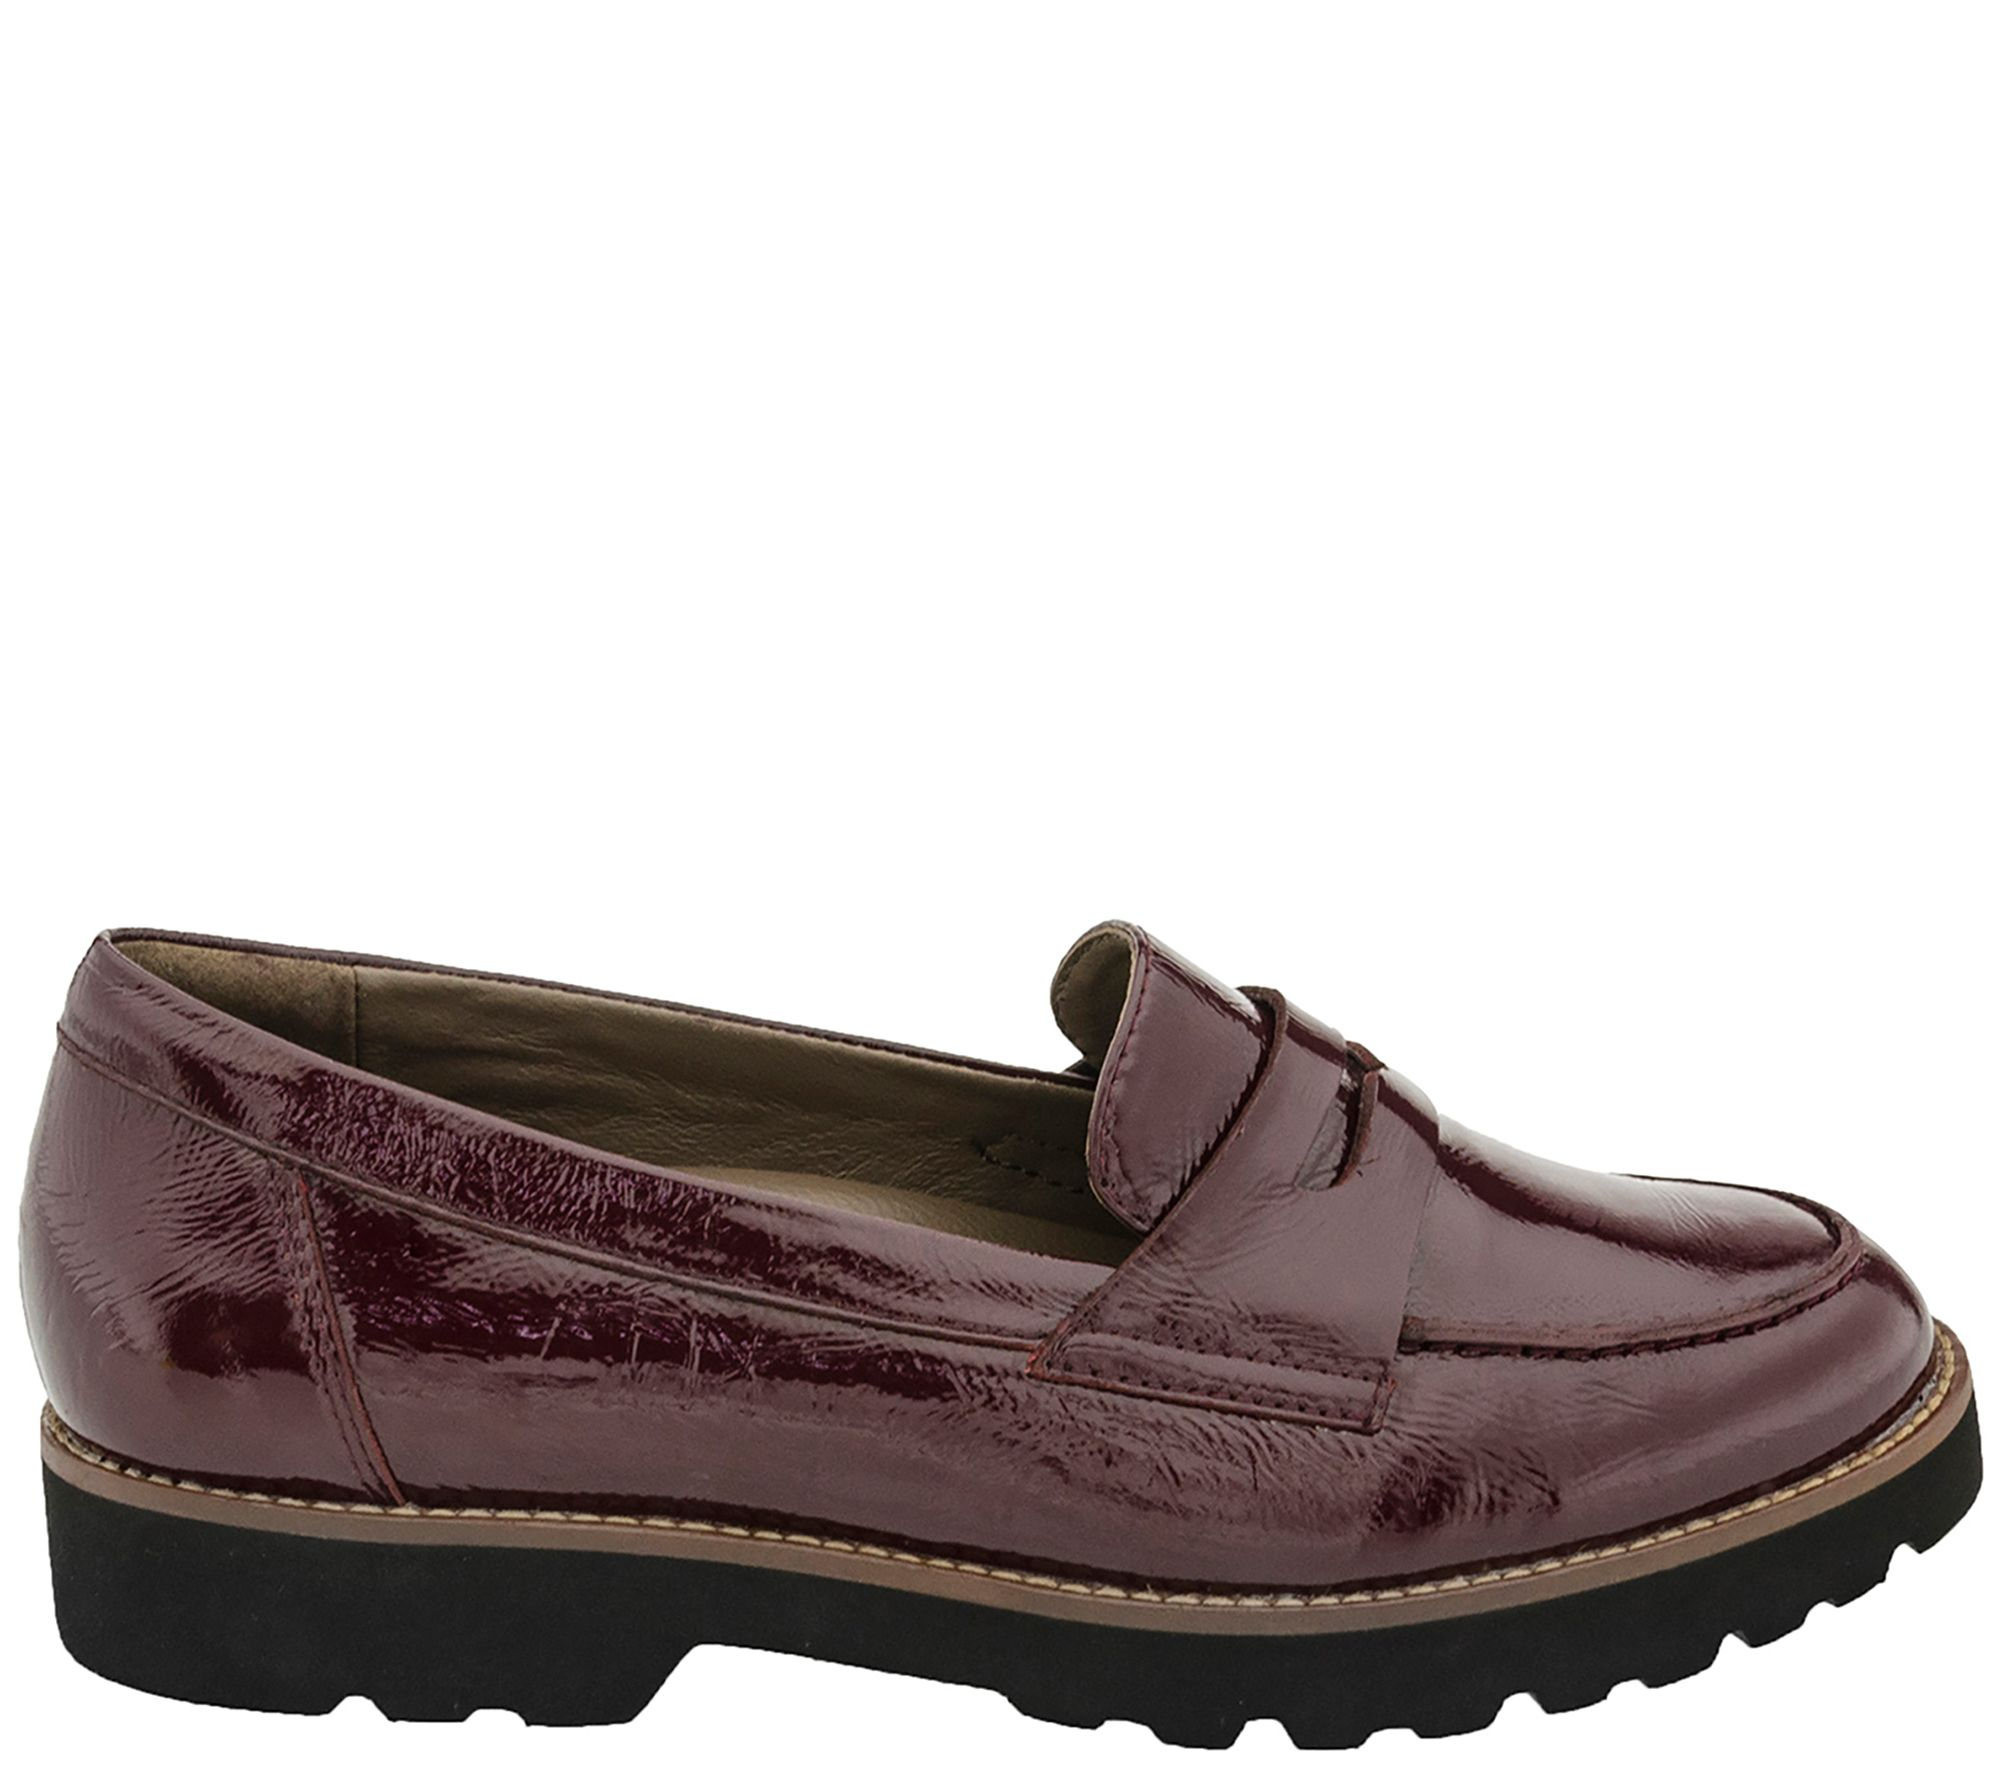 d1efdb45bad85 Earthies Leather Slip On Loafers - Braga — QVC.com